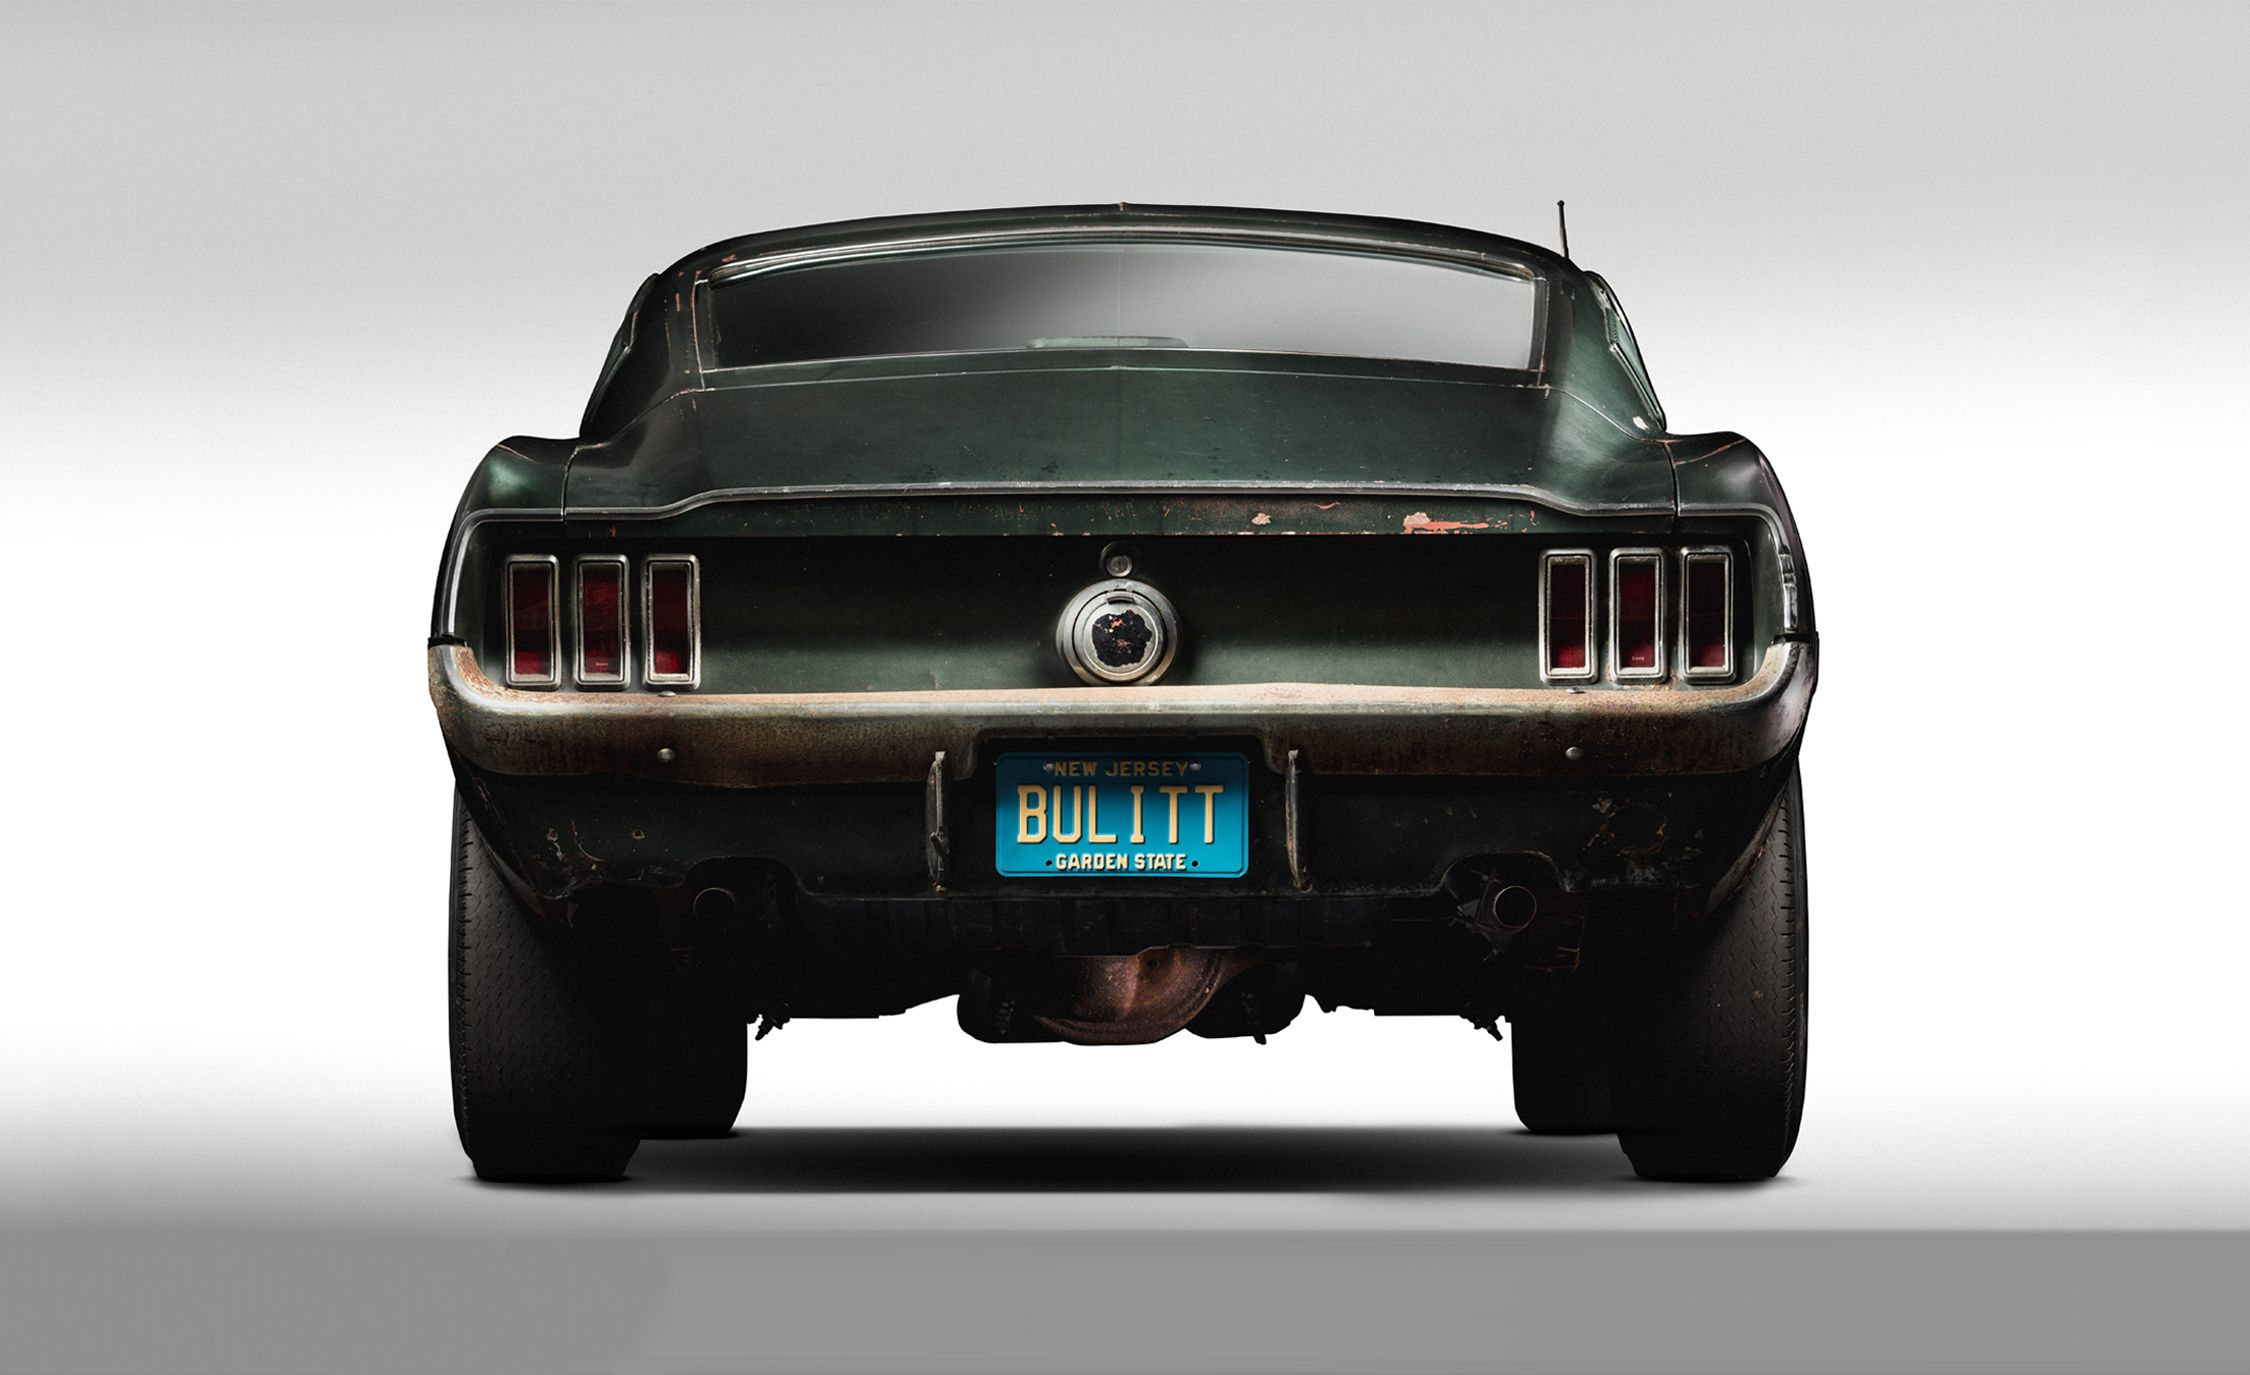 How The Original Bullitt Movie Mustang Was Rediscovered